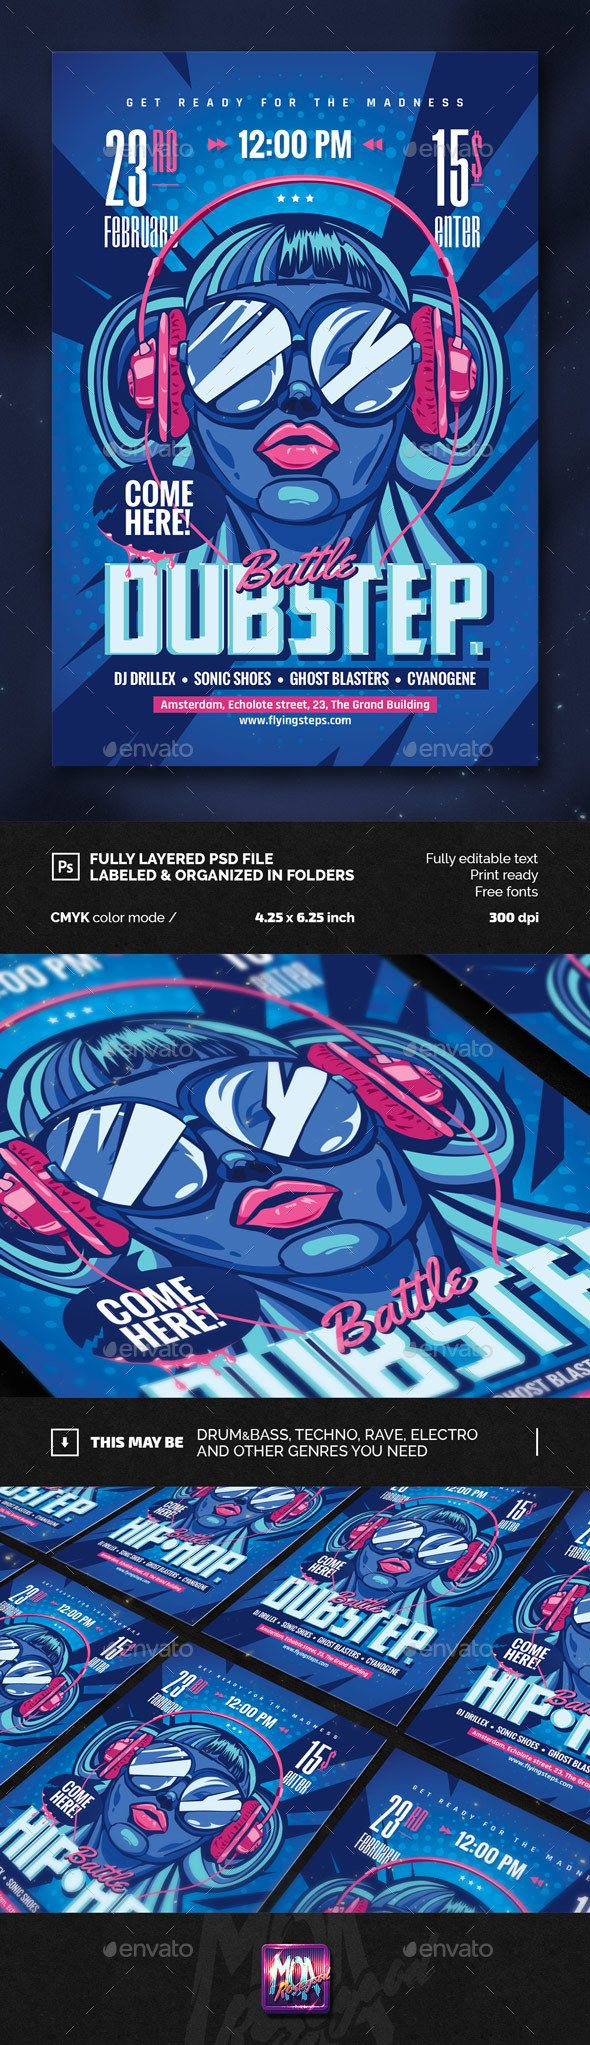 DubStep and Hip-hop Battle Party Flyer Template PSD. Download here: http://graphicriver.net/item/dubstep-and-hiphop-battle-party-flyer/14881769?ref=ksioks